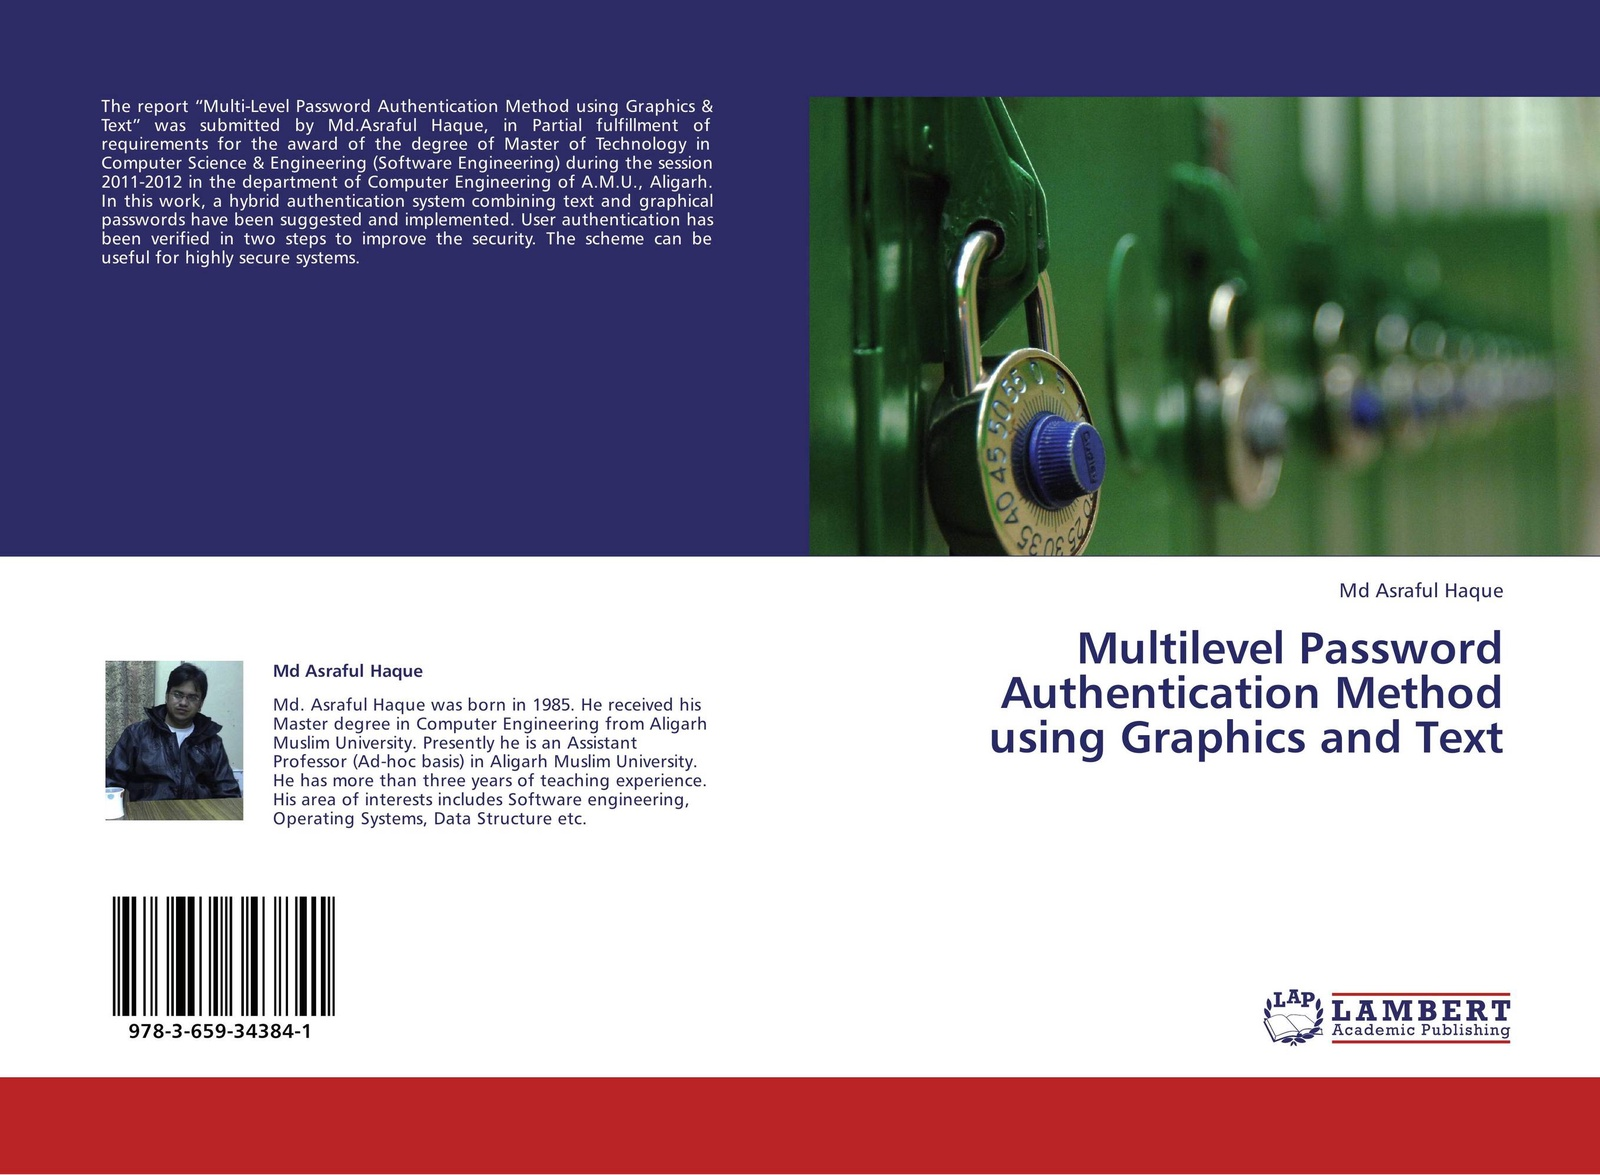 Md Asraful Haque Multilevel Password Authentication Method using Graphics and Text